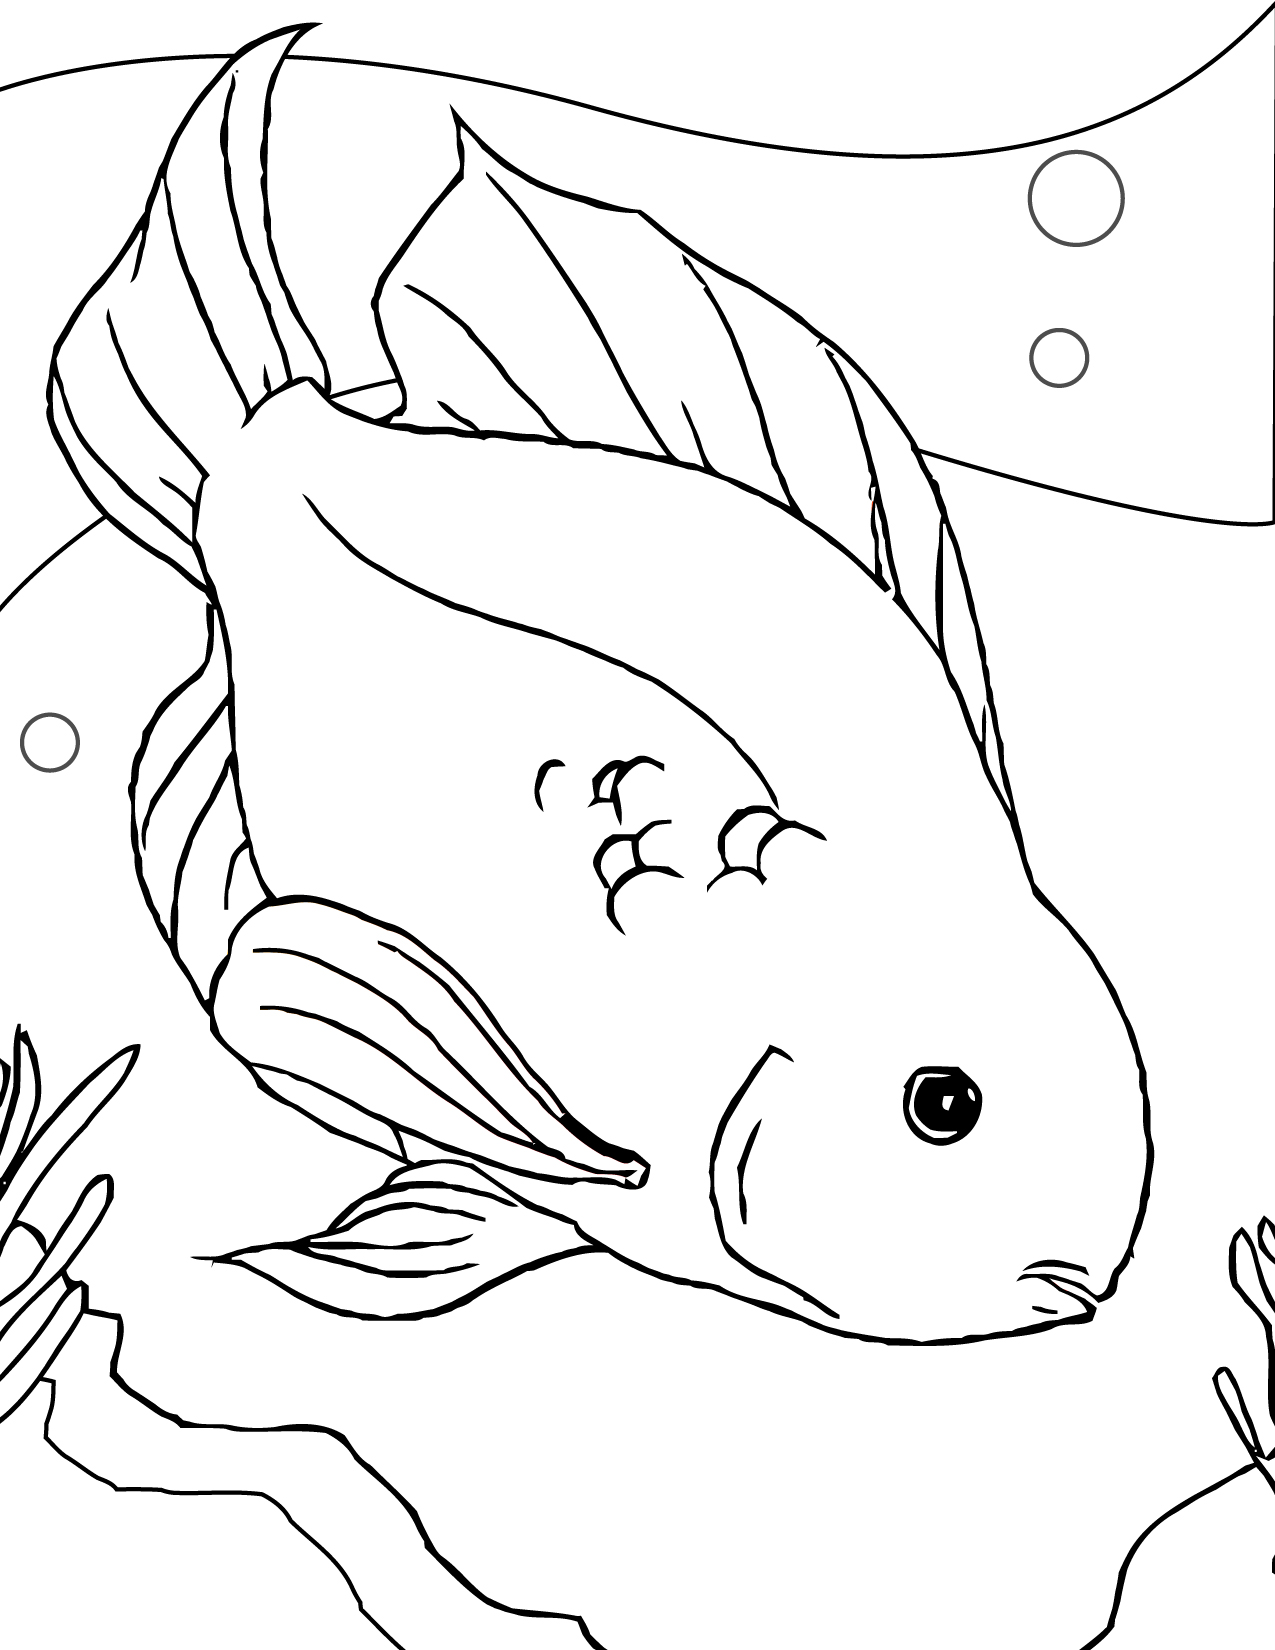 Cool Fish Drawing at GetDrawings.com | Free for personal use Cool ...